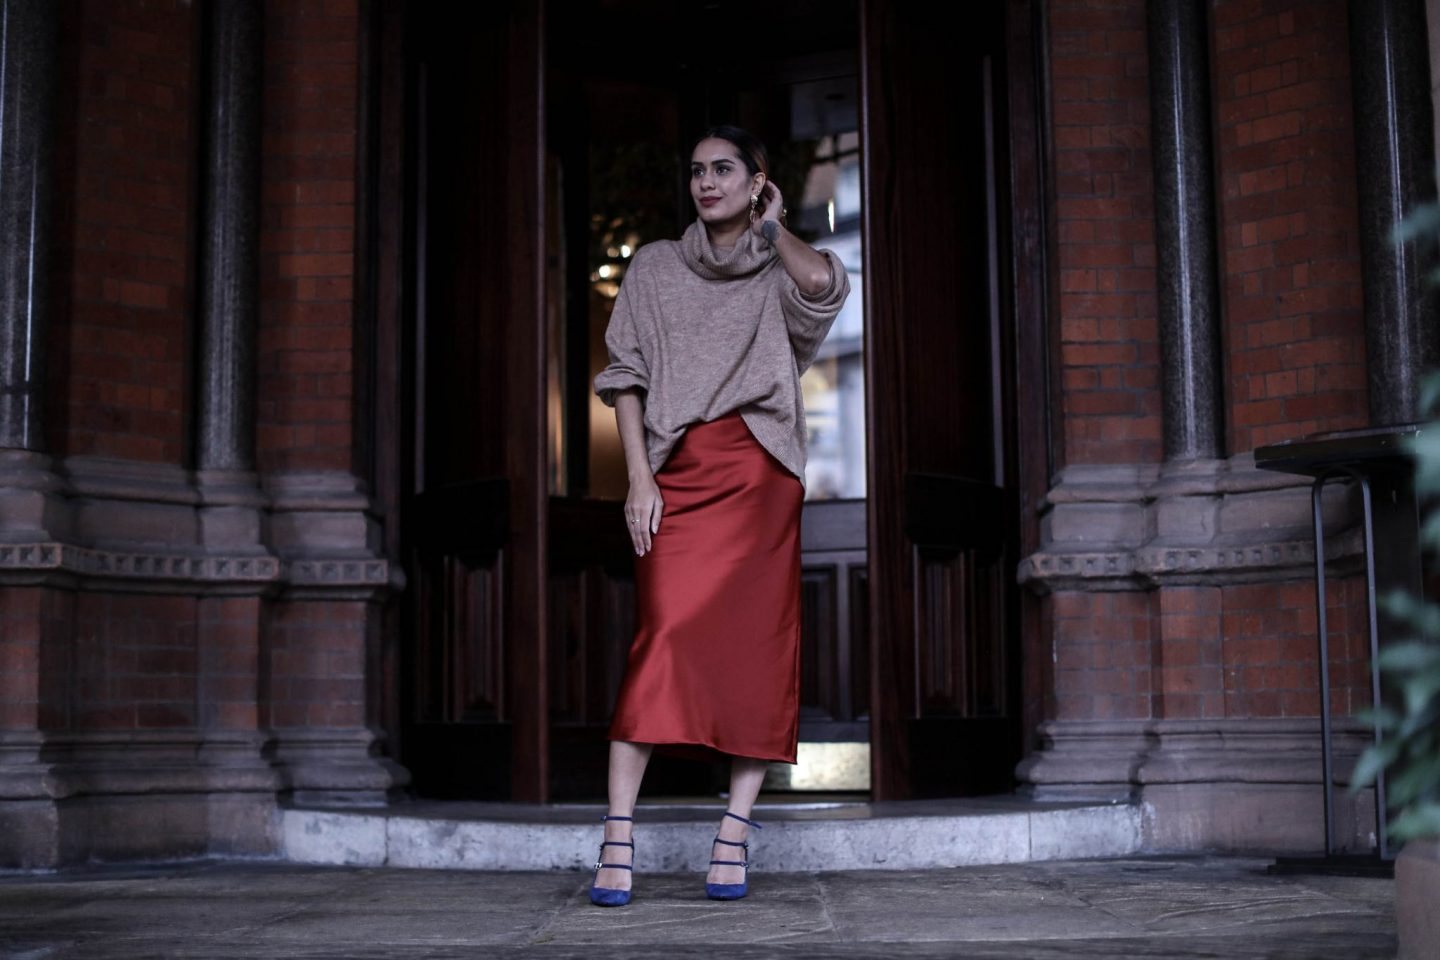 Reena Rai wearing THAT sold out Topshop skirt with Nicholas Kirkwood heels and a nude jumper at the St Pancras Renaissance hotel